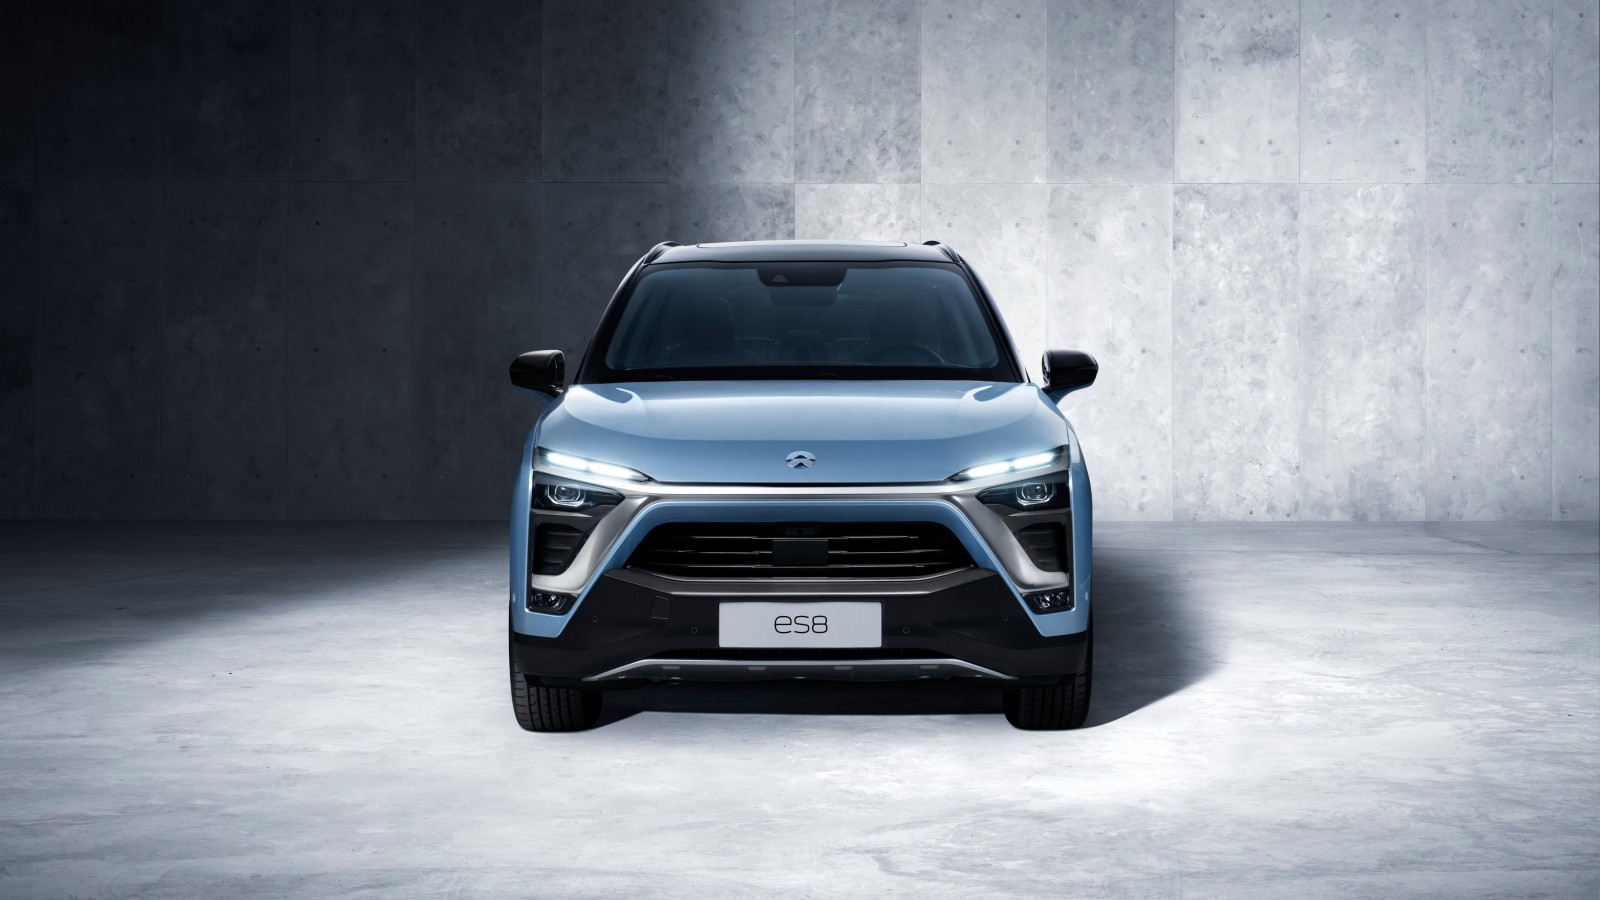 Wallpaper Desktop 3d Hd Car Nio Es8 Electric Suv 2018 4k Wallpapers Hd Wallpapers